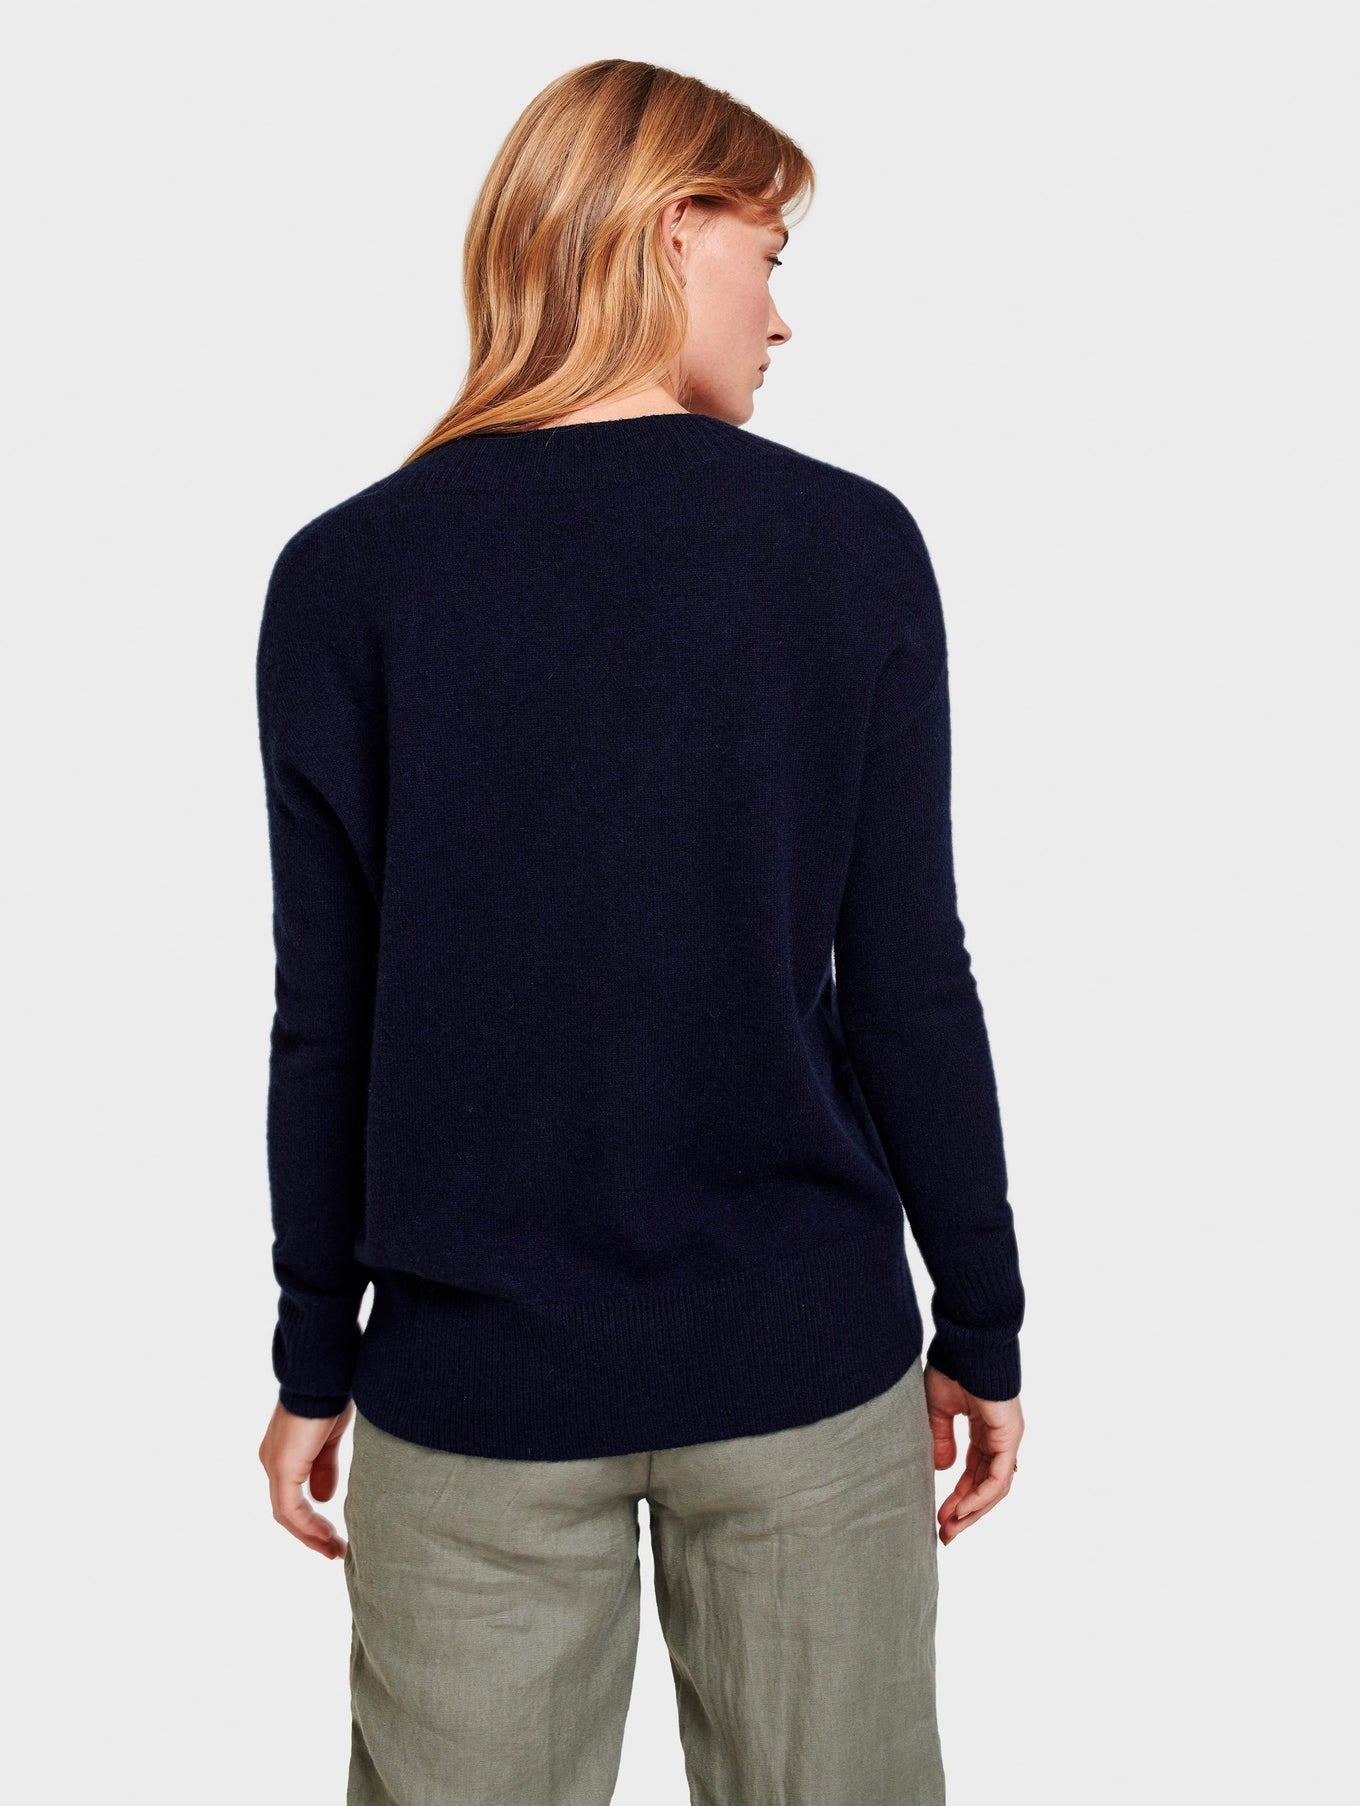 Cashmere Wide Rib V Neck - Deep Navy - Image 3